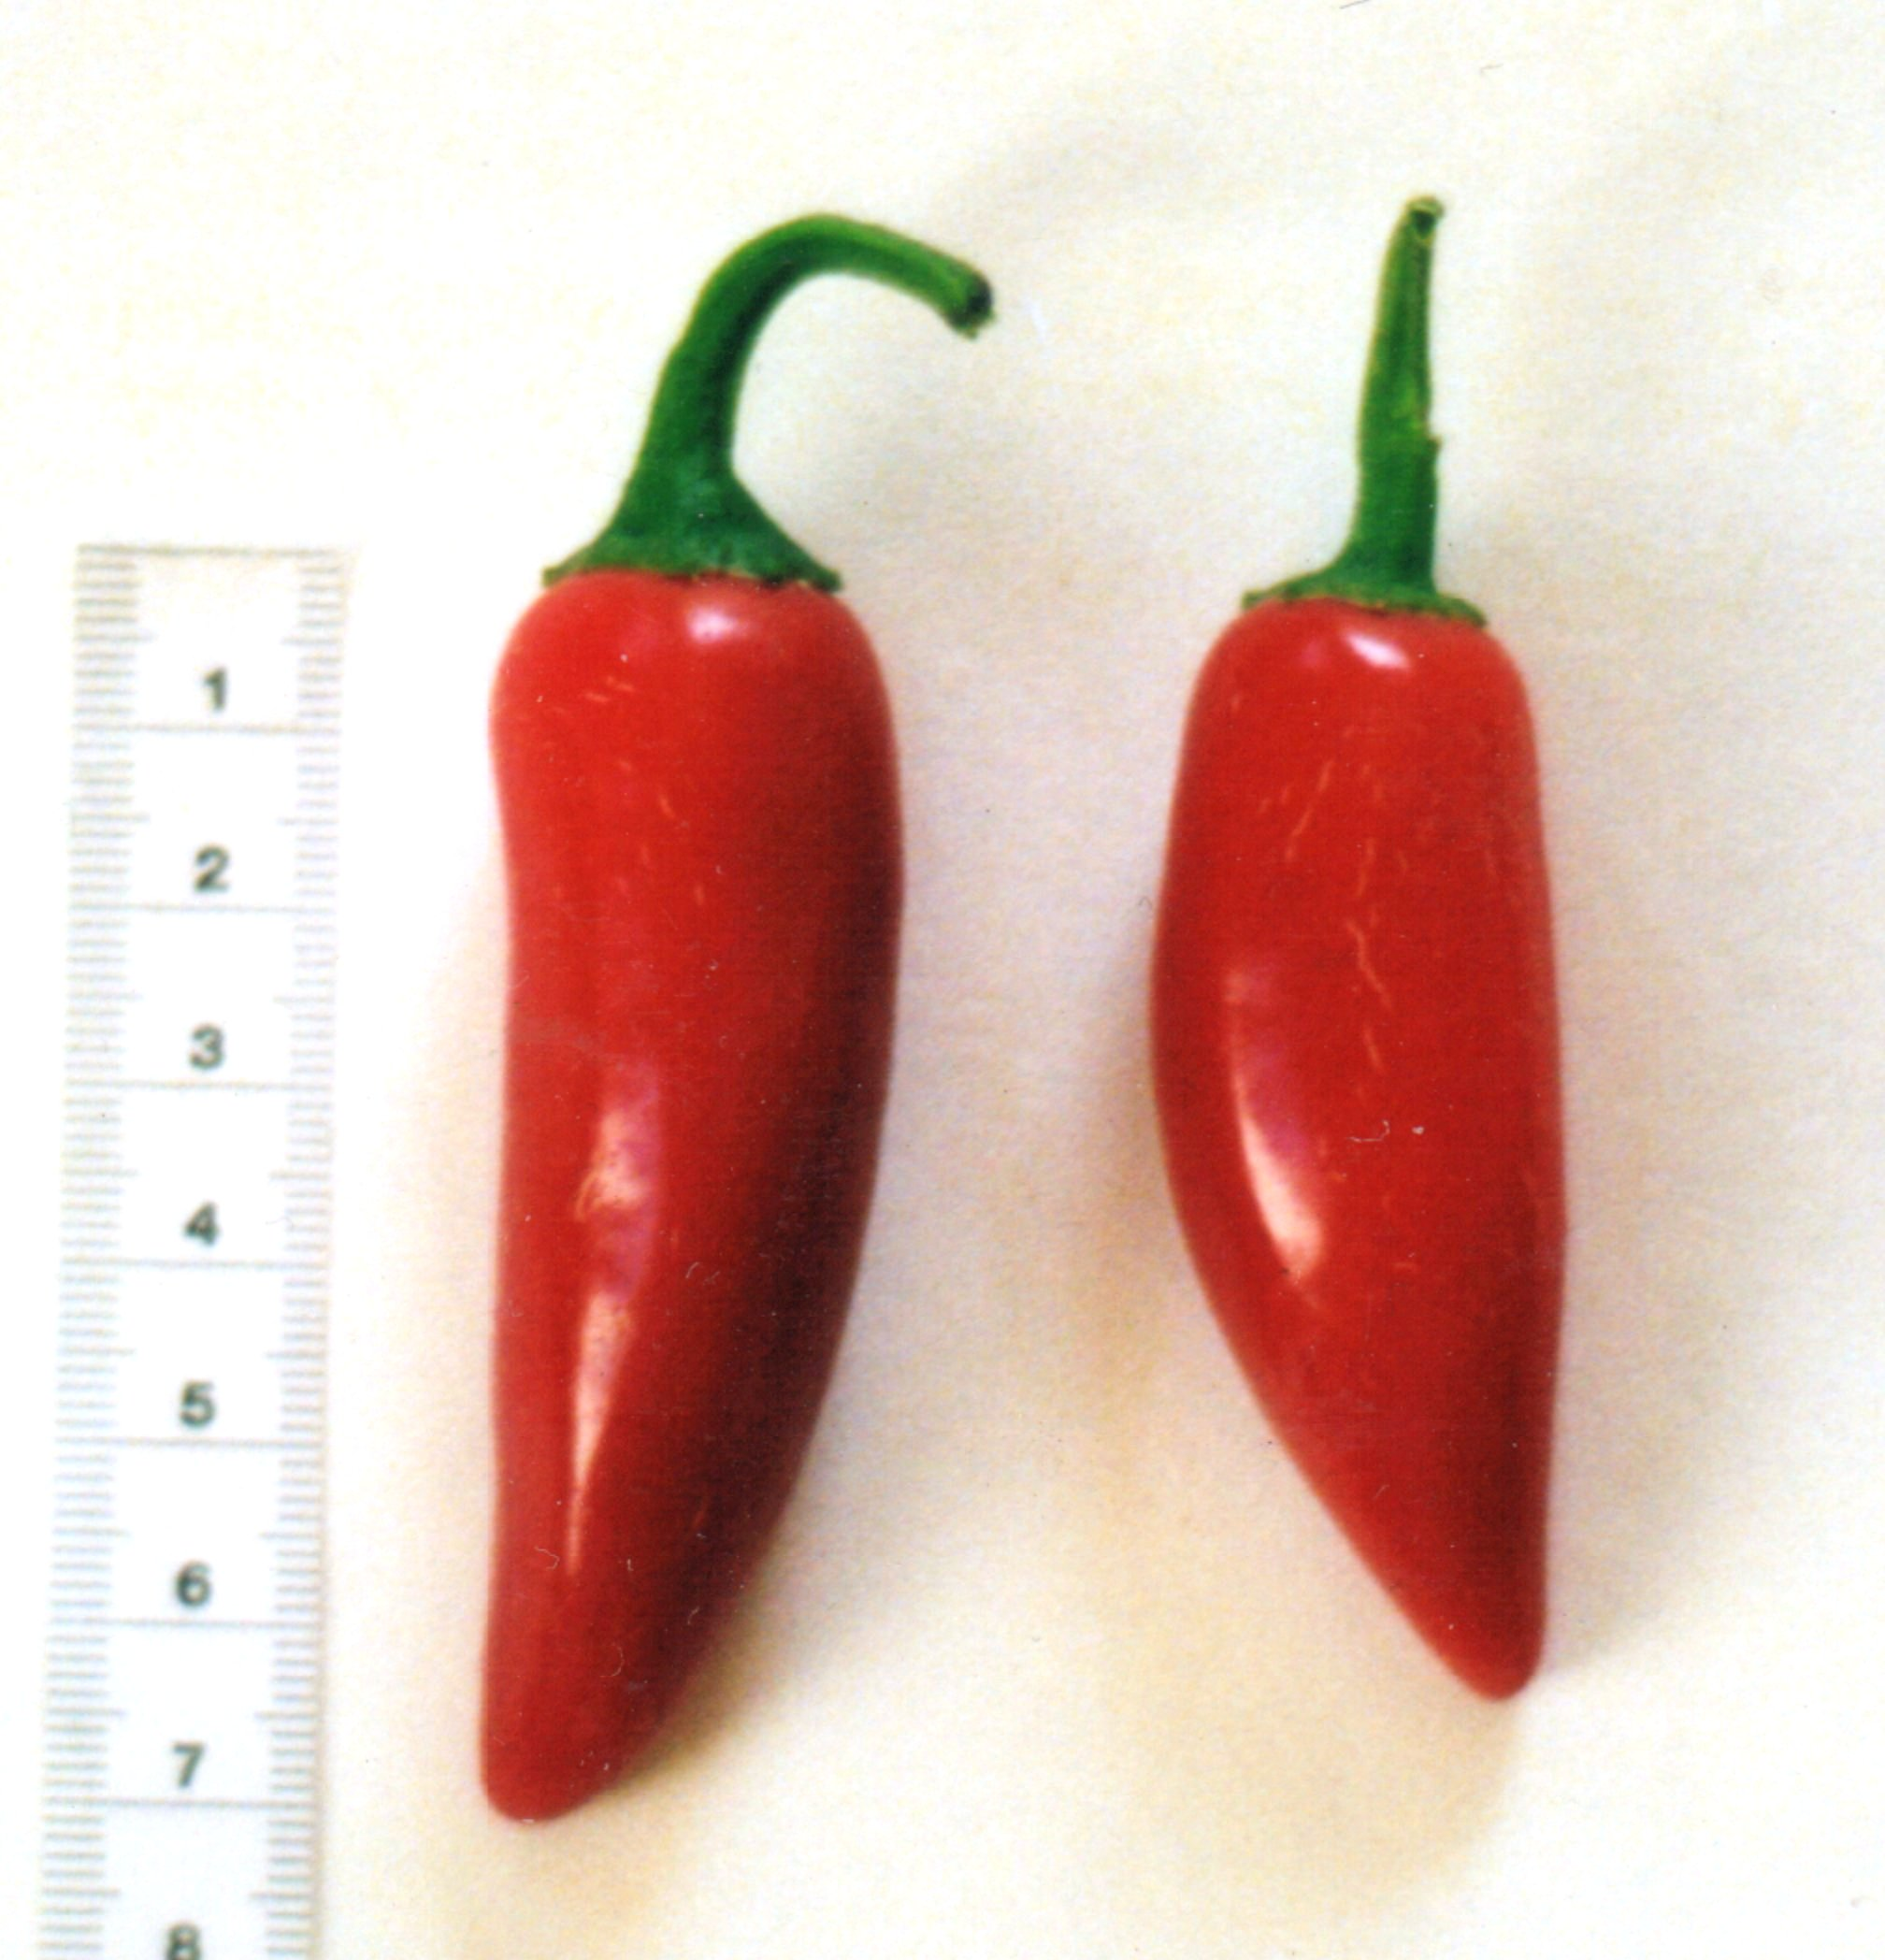 Capsicum: The Problem with Varieties